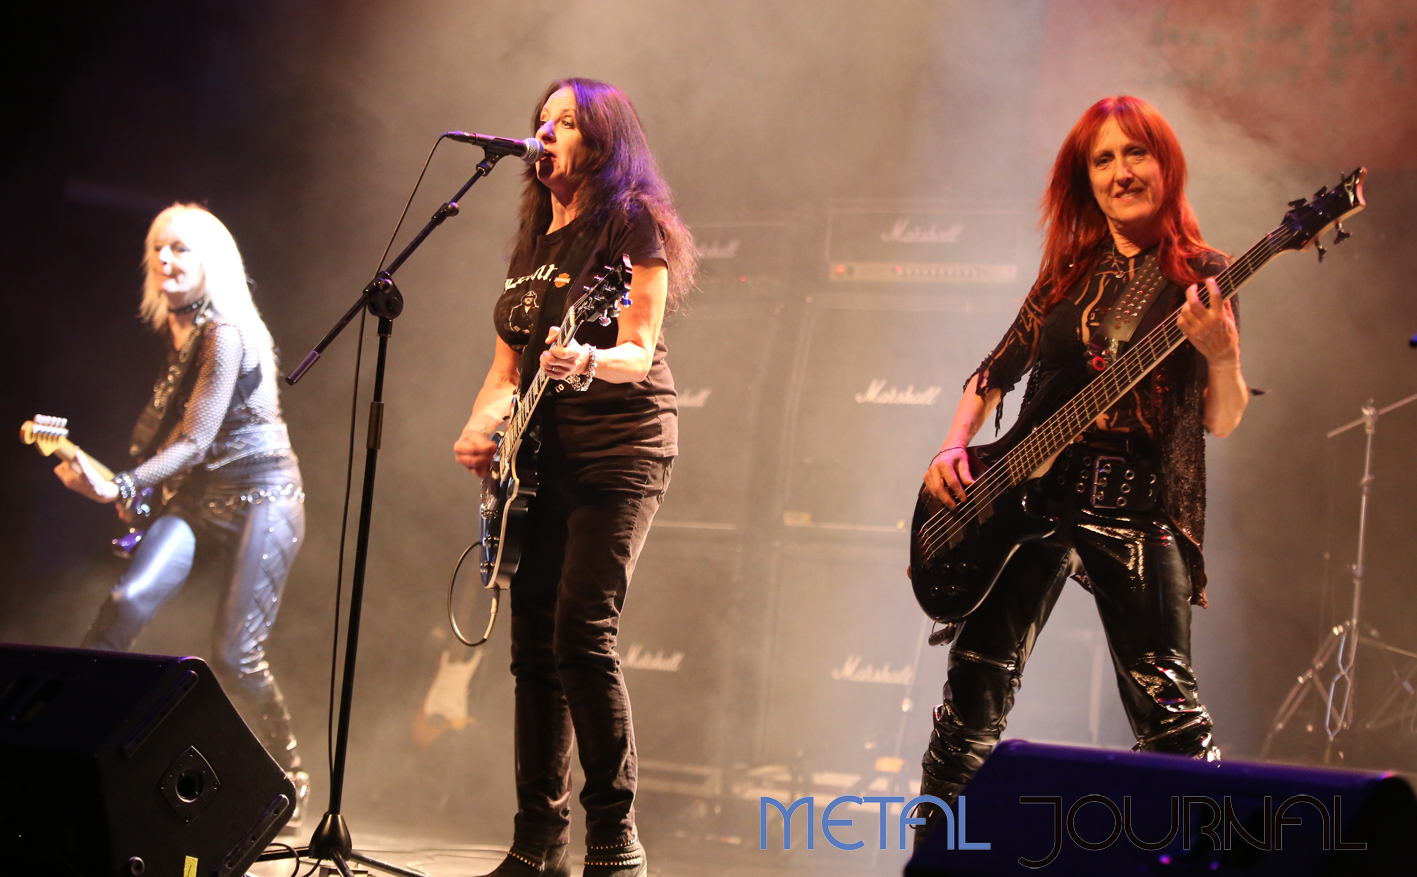 girlschool - metal journal 2018 pic 4